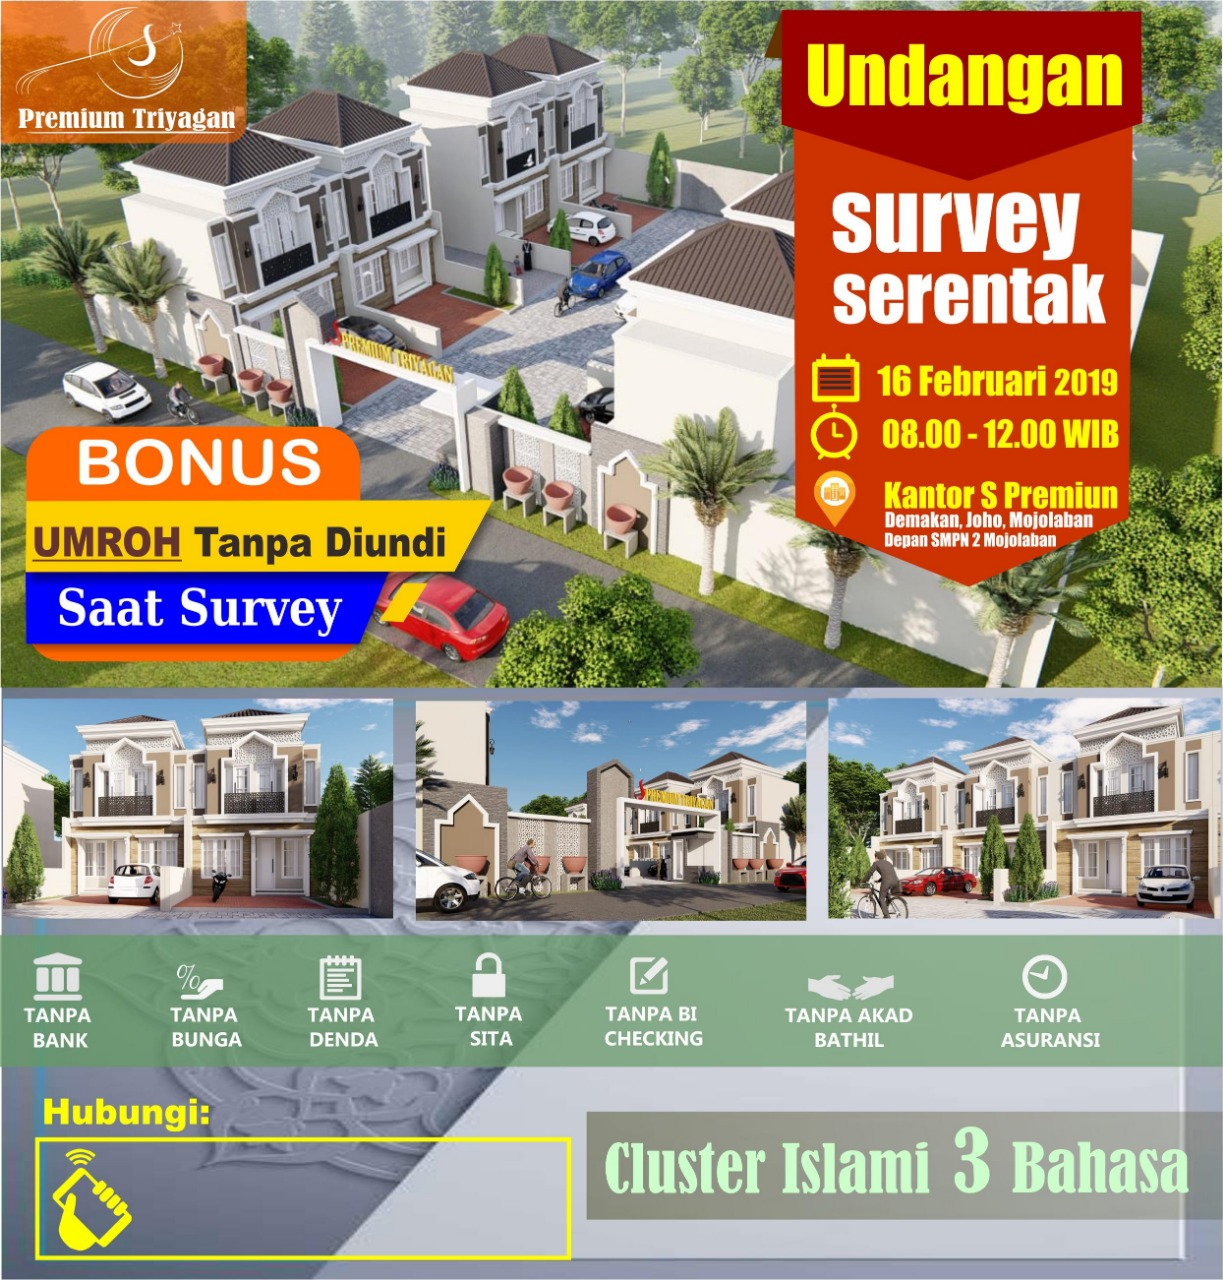 SurveyserentSurveyserentak (Uploaded)